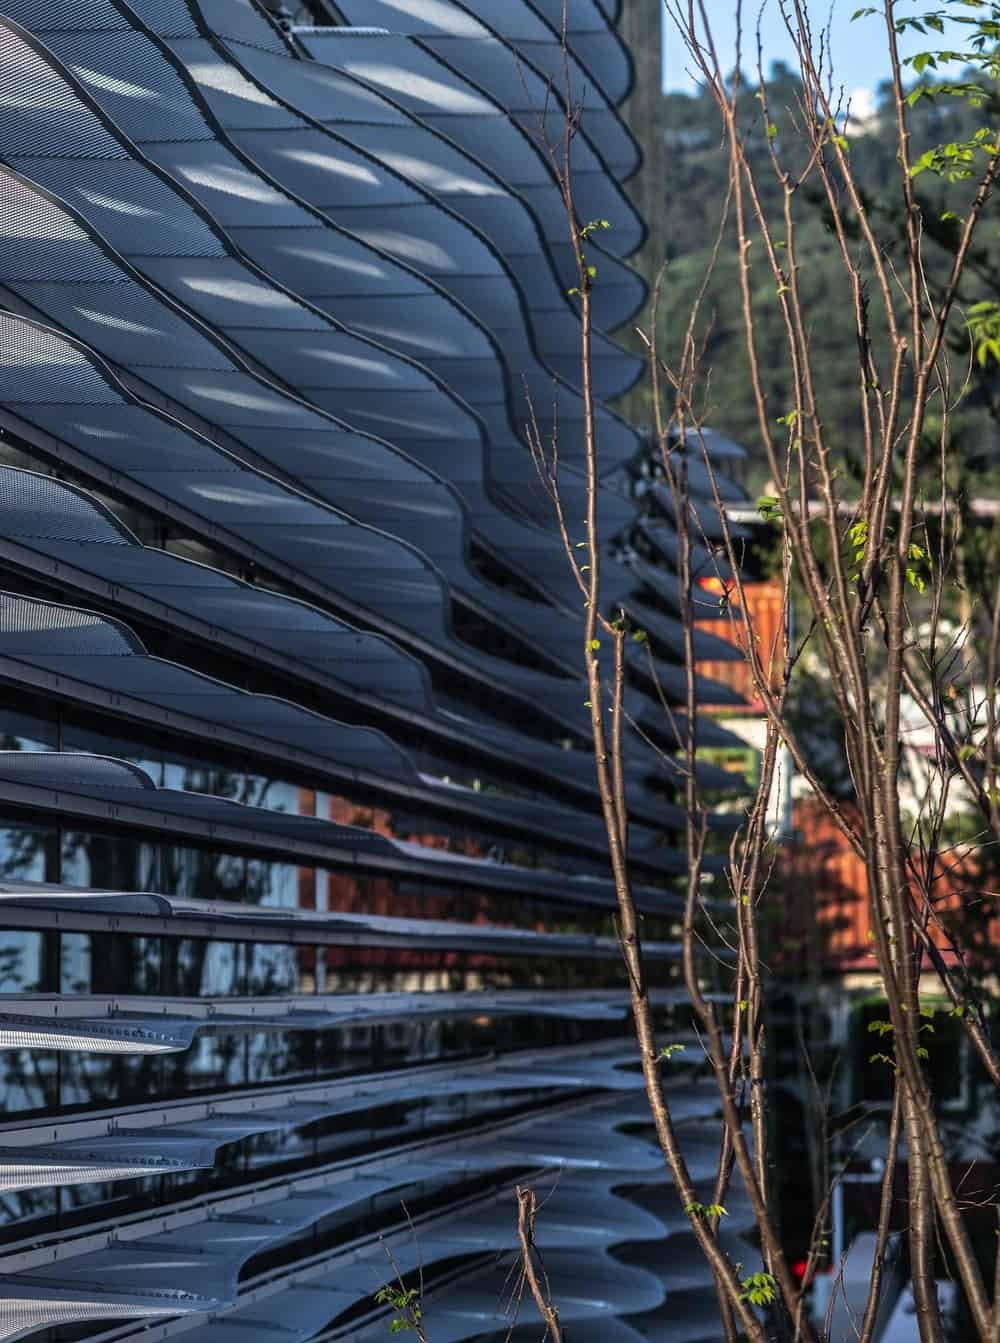 This is a close look at the structure attached to the glass walls of the building giving it a unique aesthetic that is complemented by the landscaping.